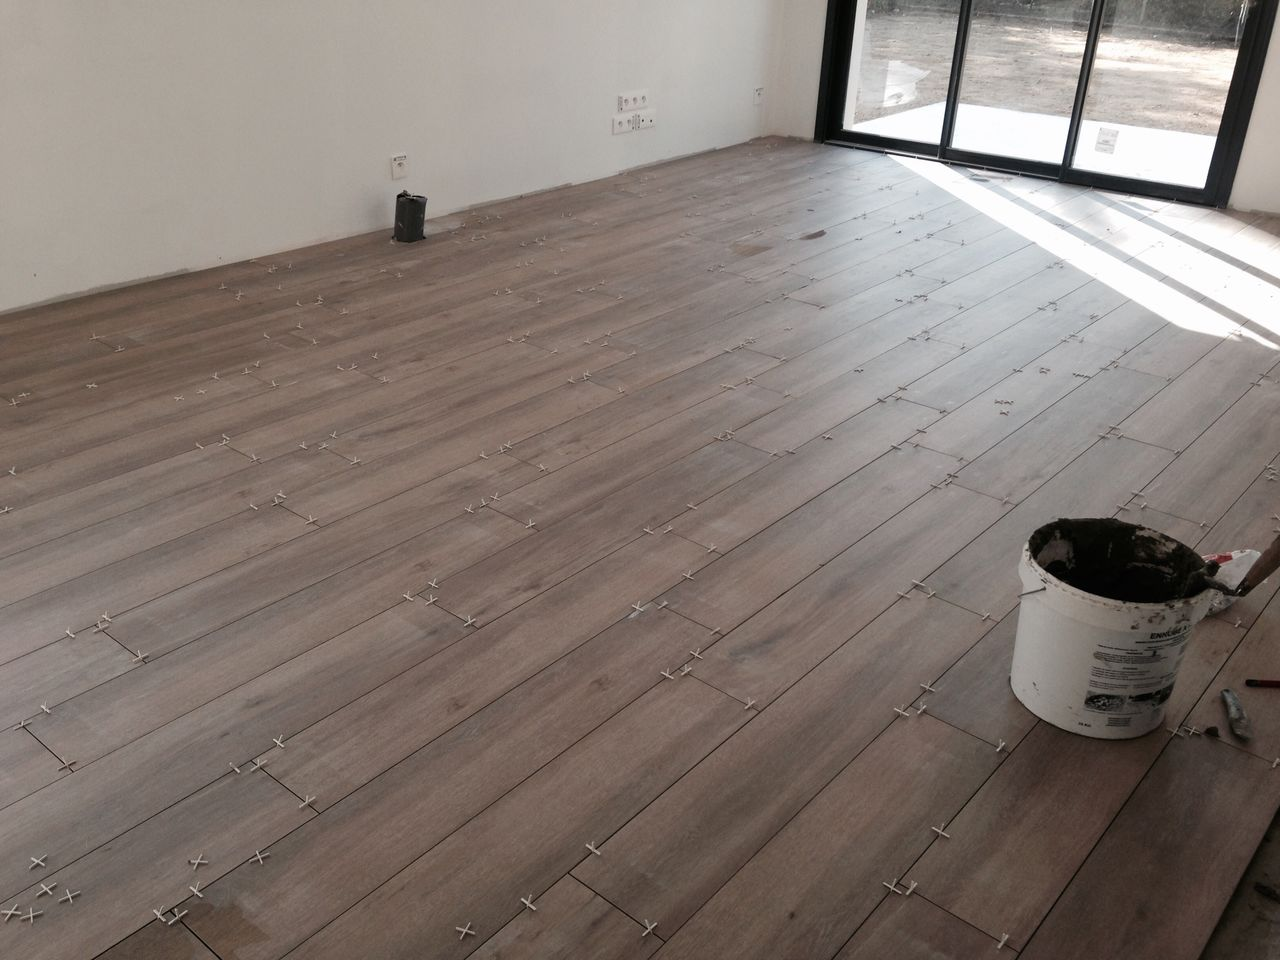 Quelle couleur de joints pour carrelage imitation parquet for Carrelage imitation parquet gris